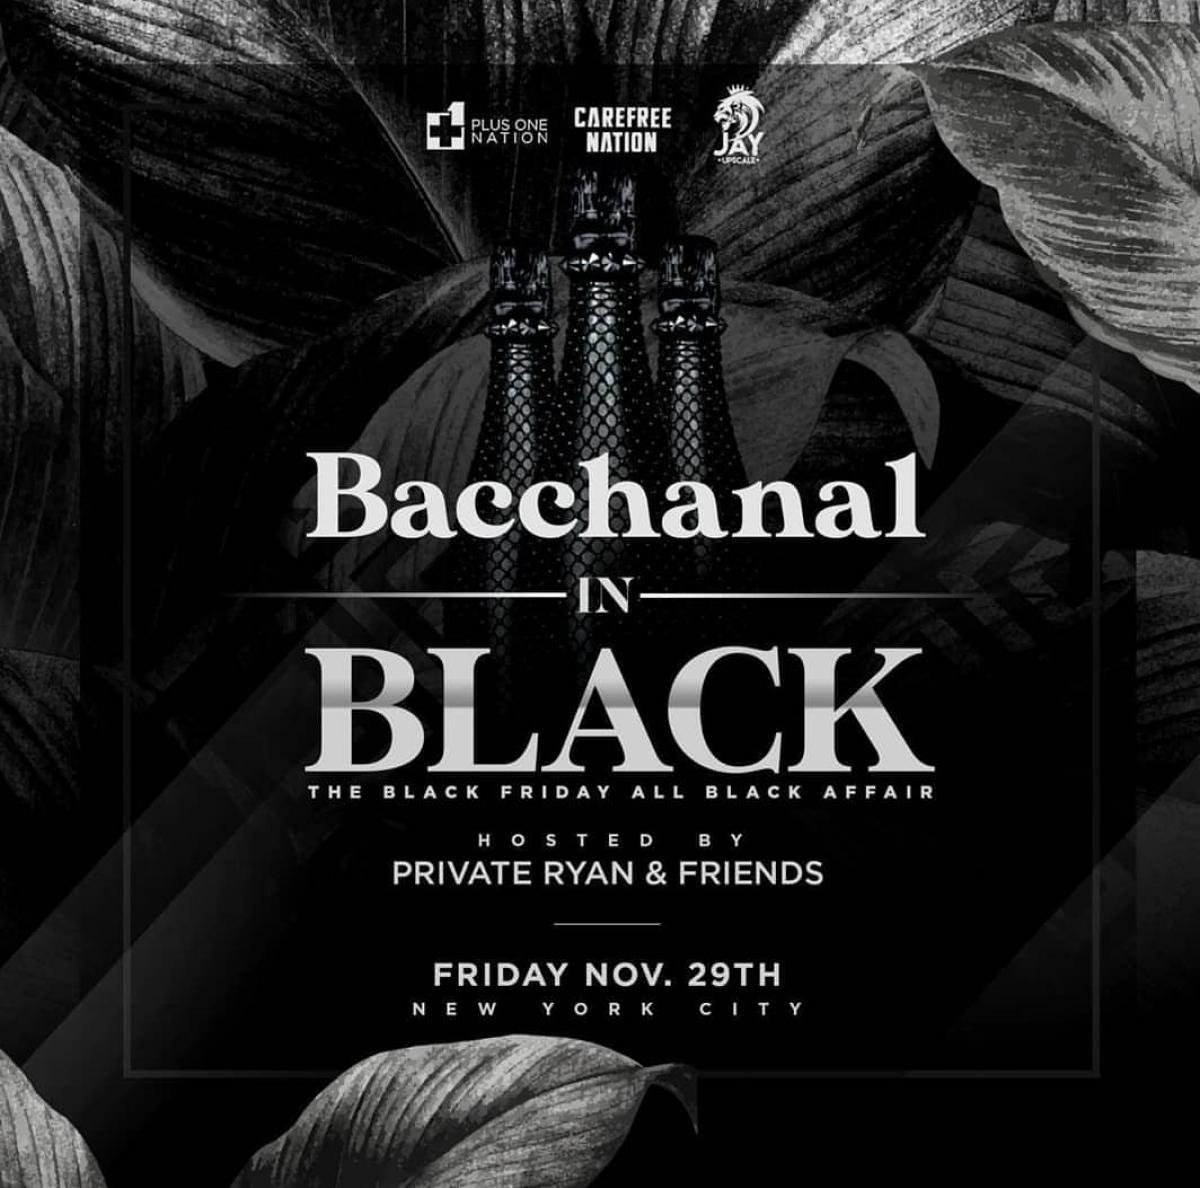 Bacchanal In Black flyer or graphic.